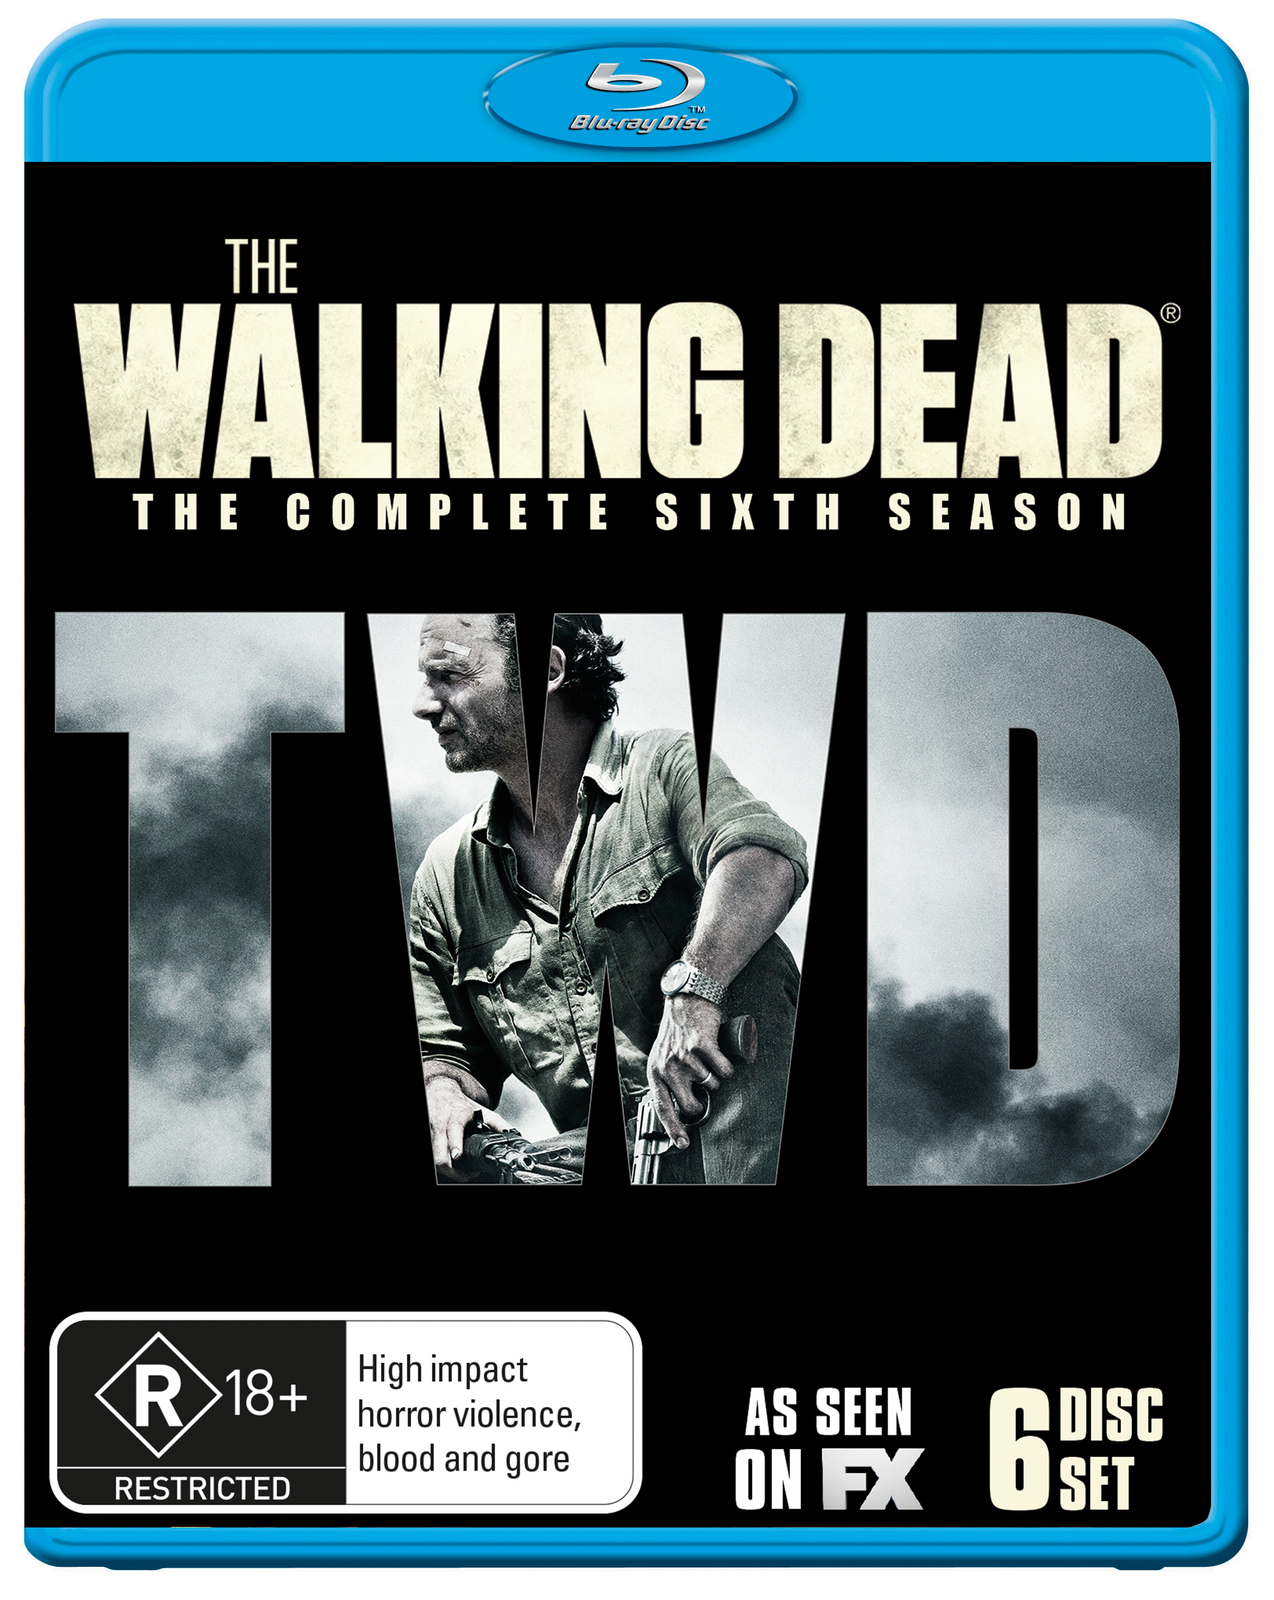 The Walking Dead - The Complete Sixth Season on Blu-ray image